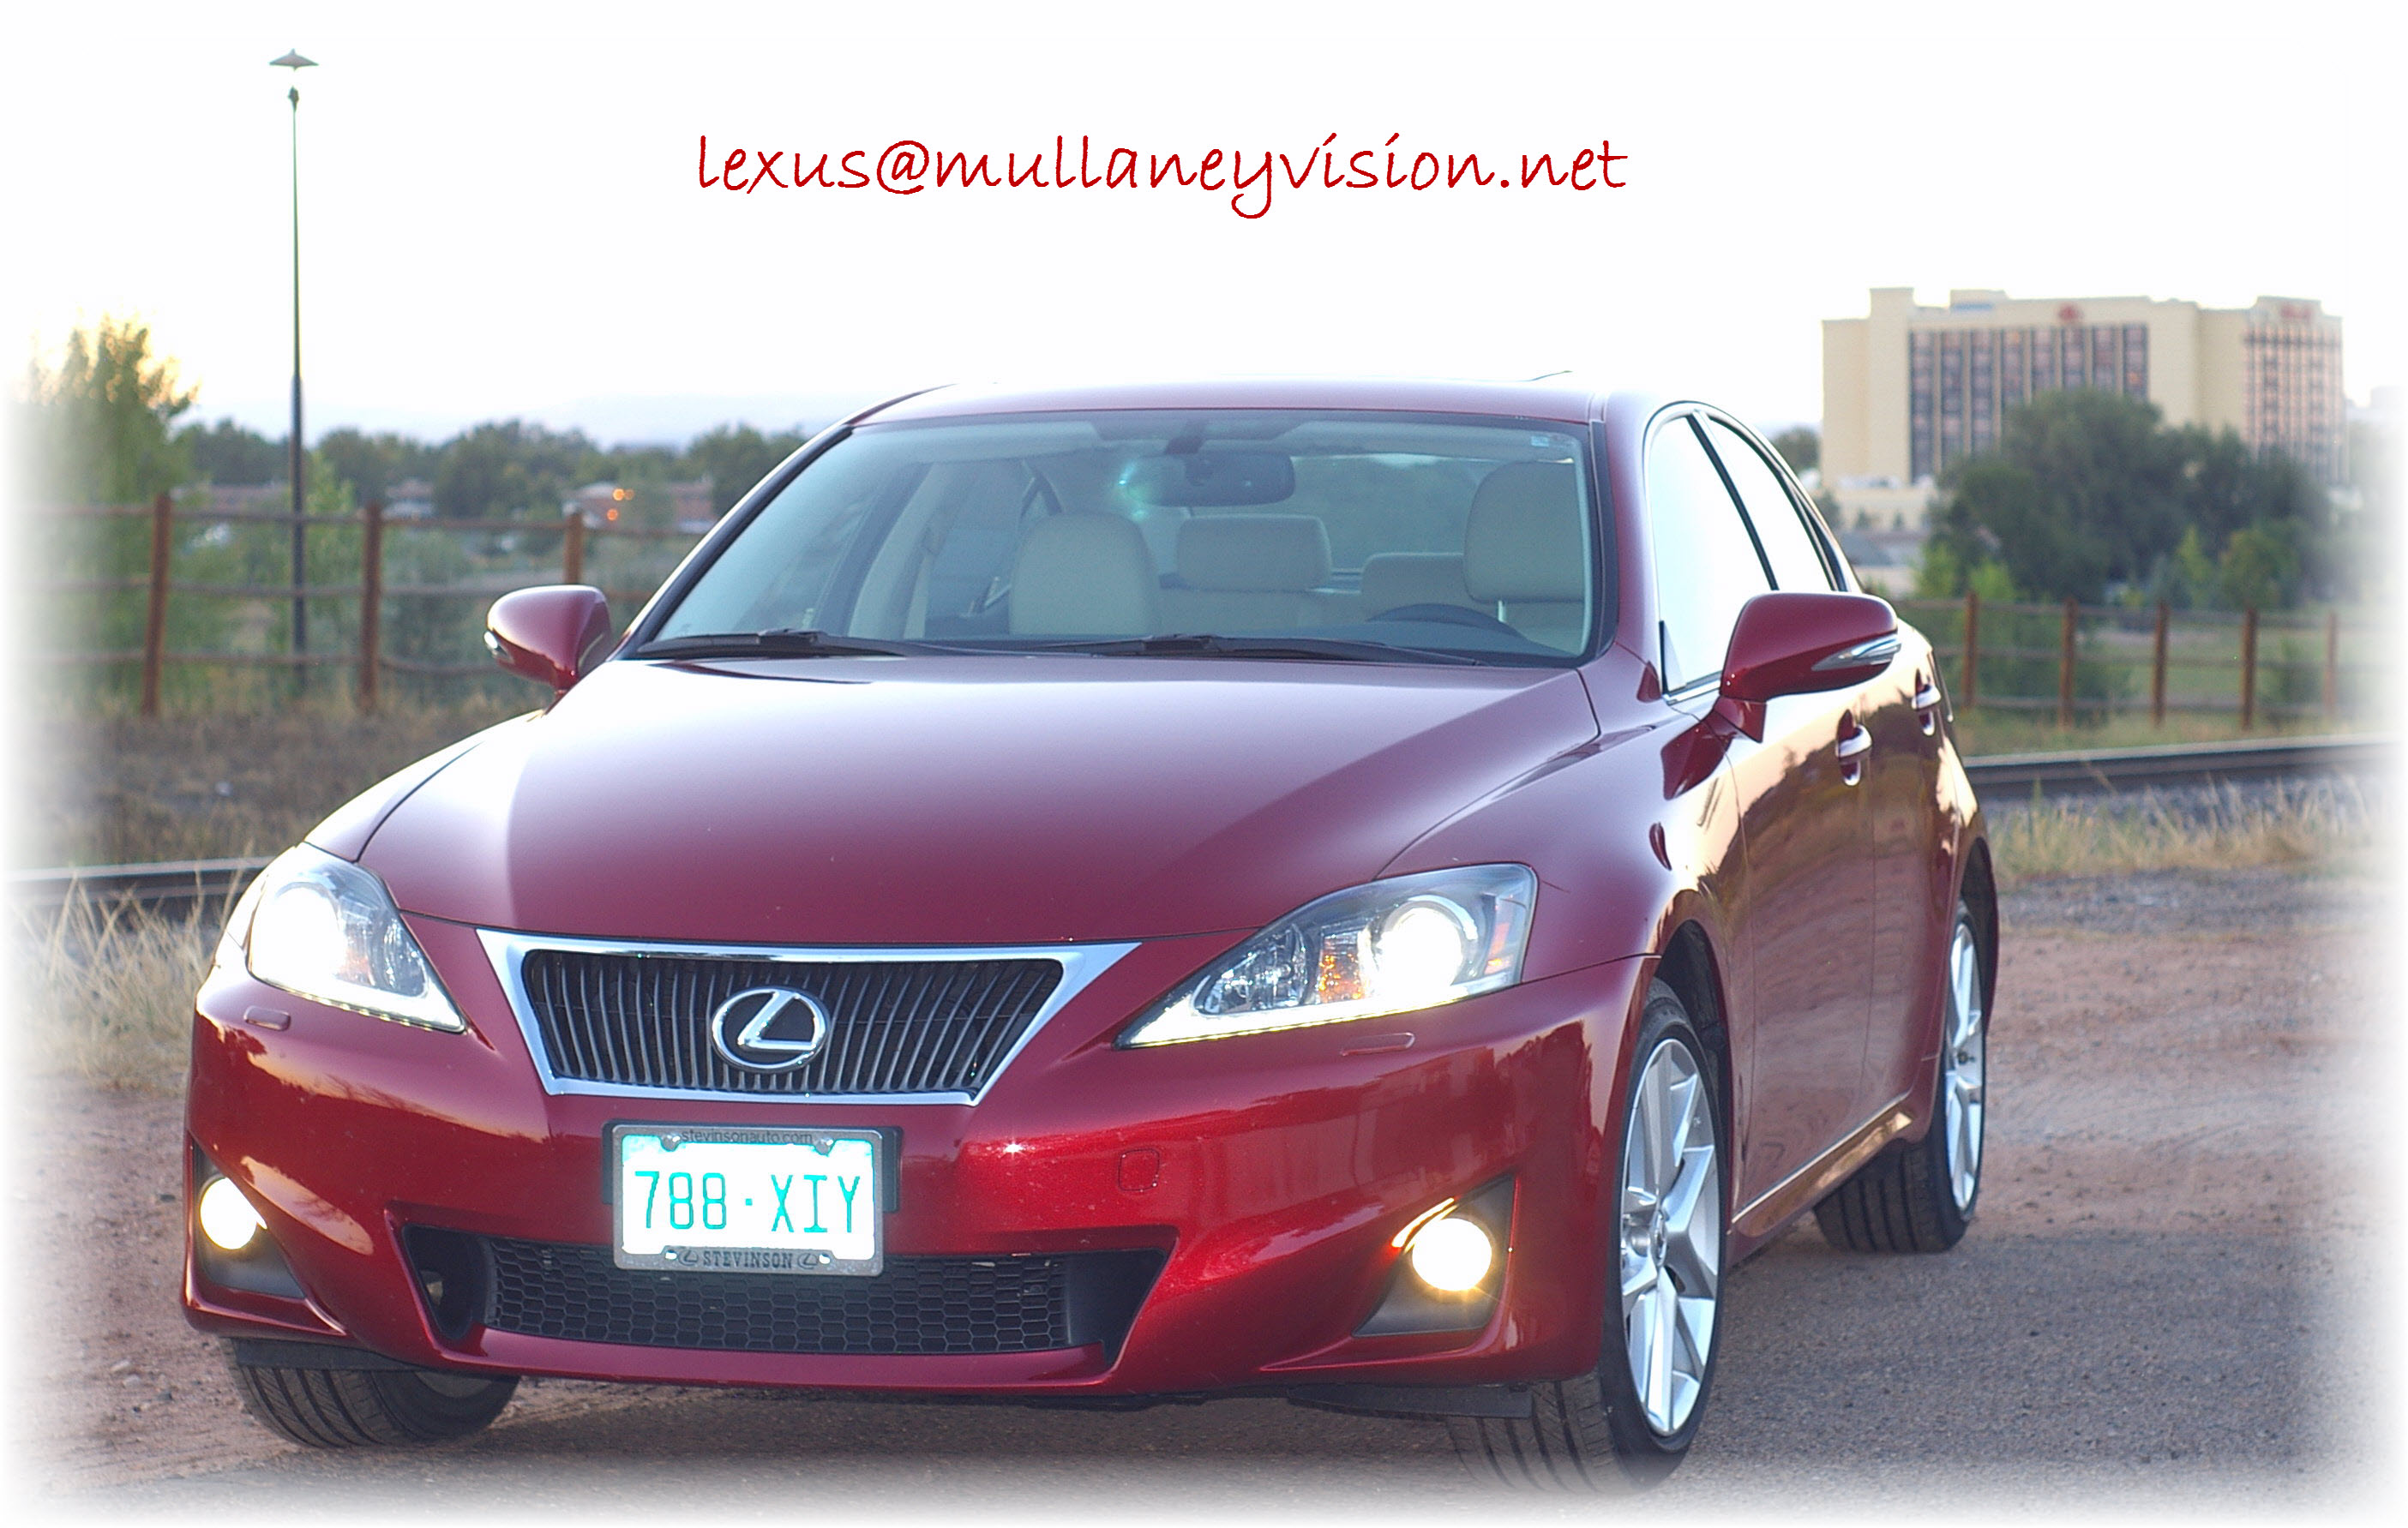 by sale for lexus owner of inspirational